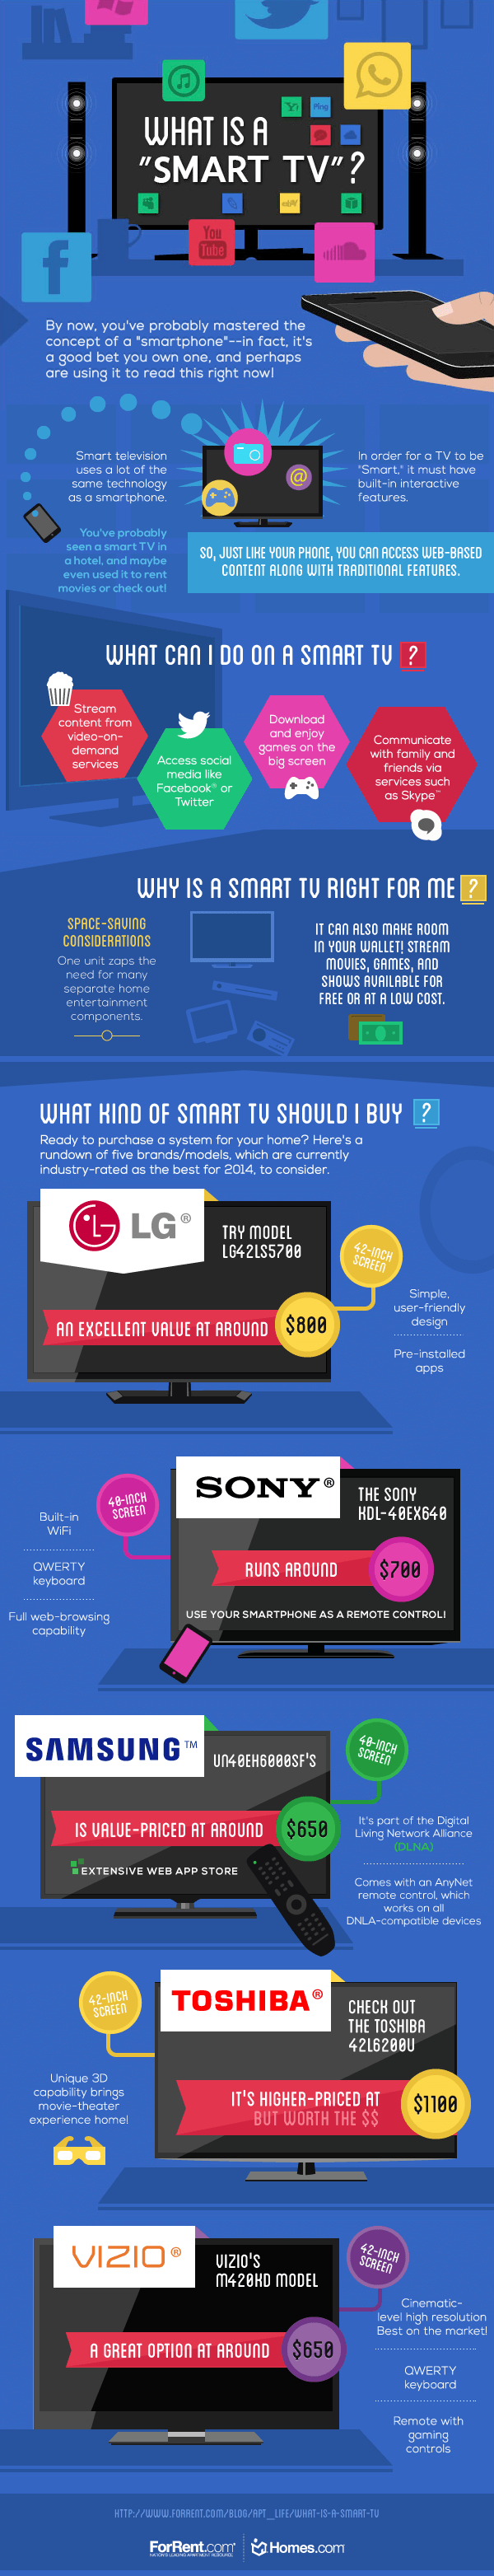 What-is-a-Smart-TV-ForRent.com-Homes.com_